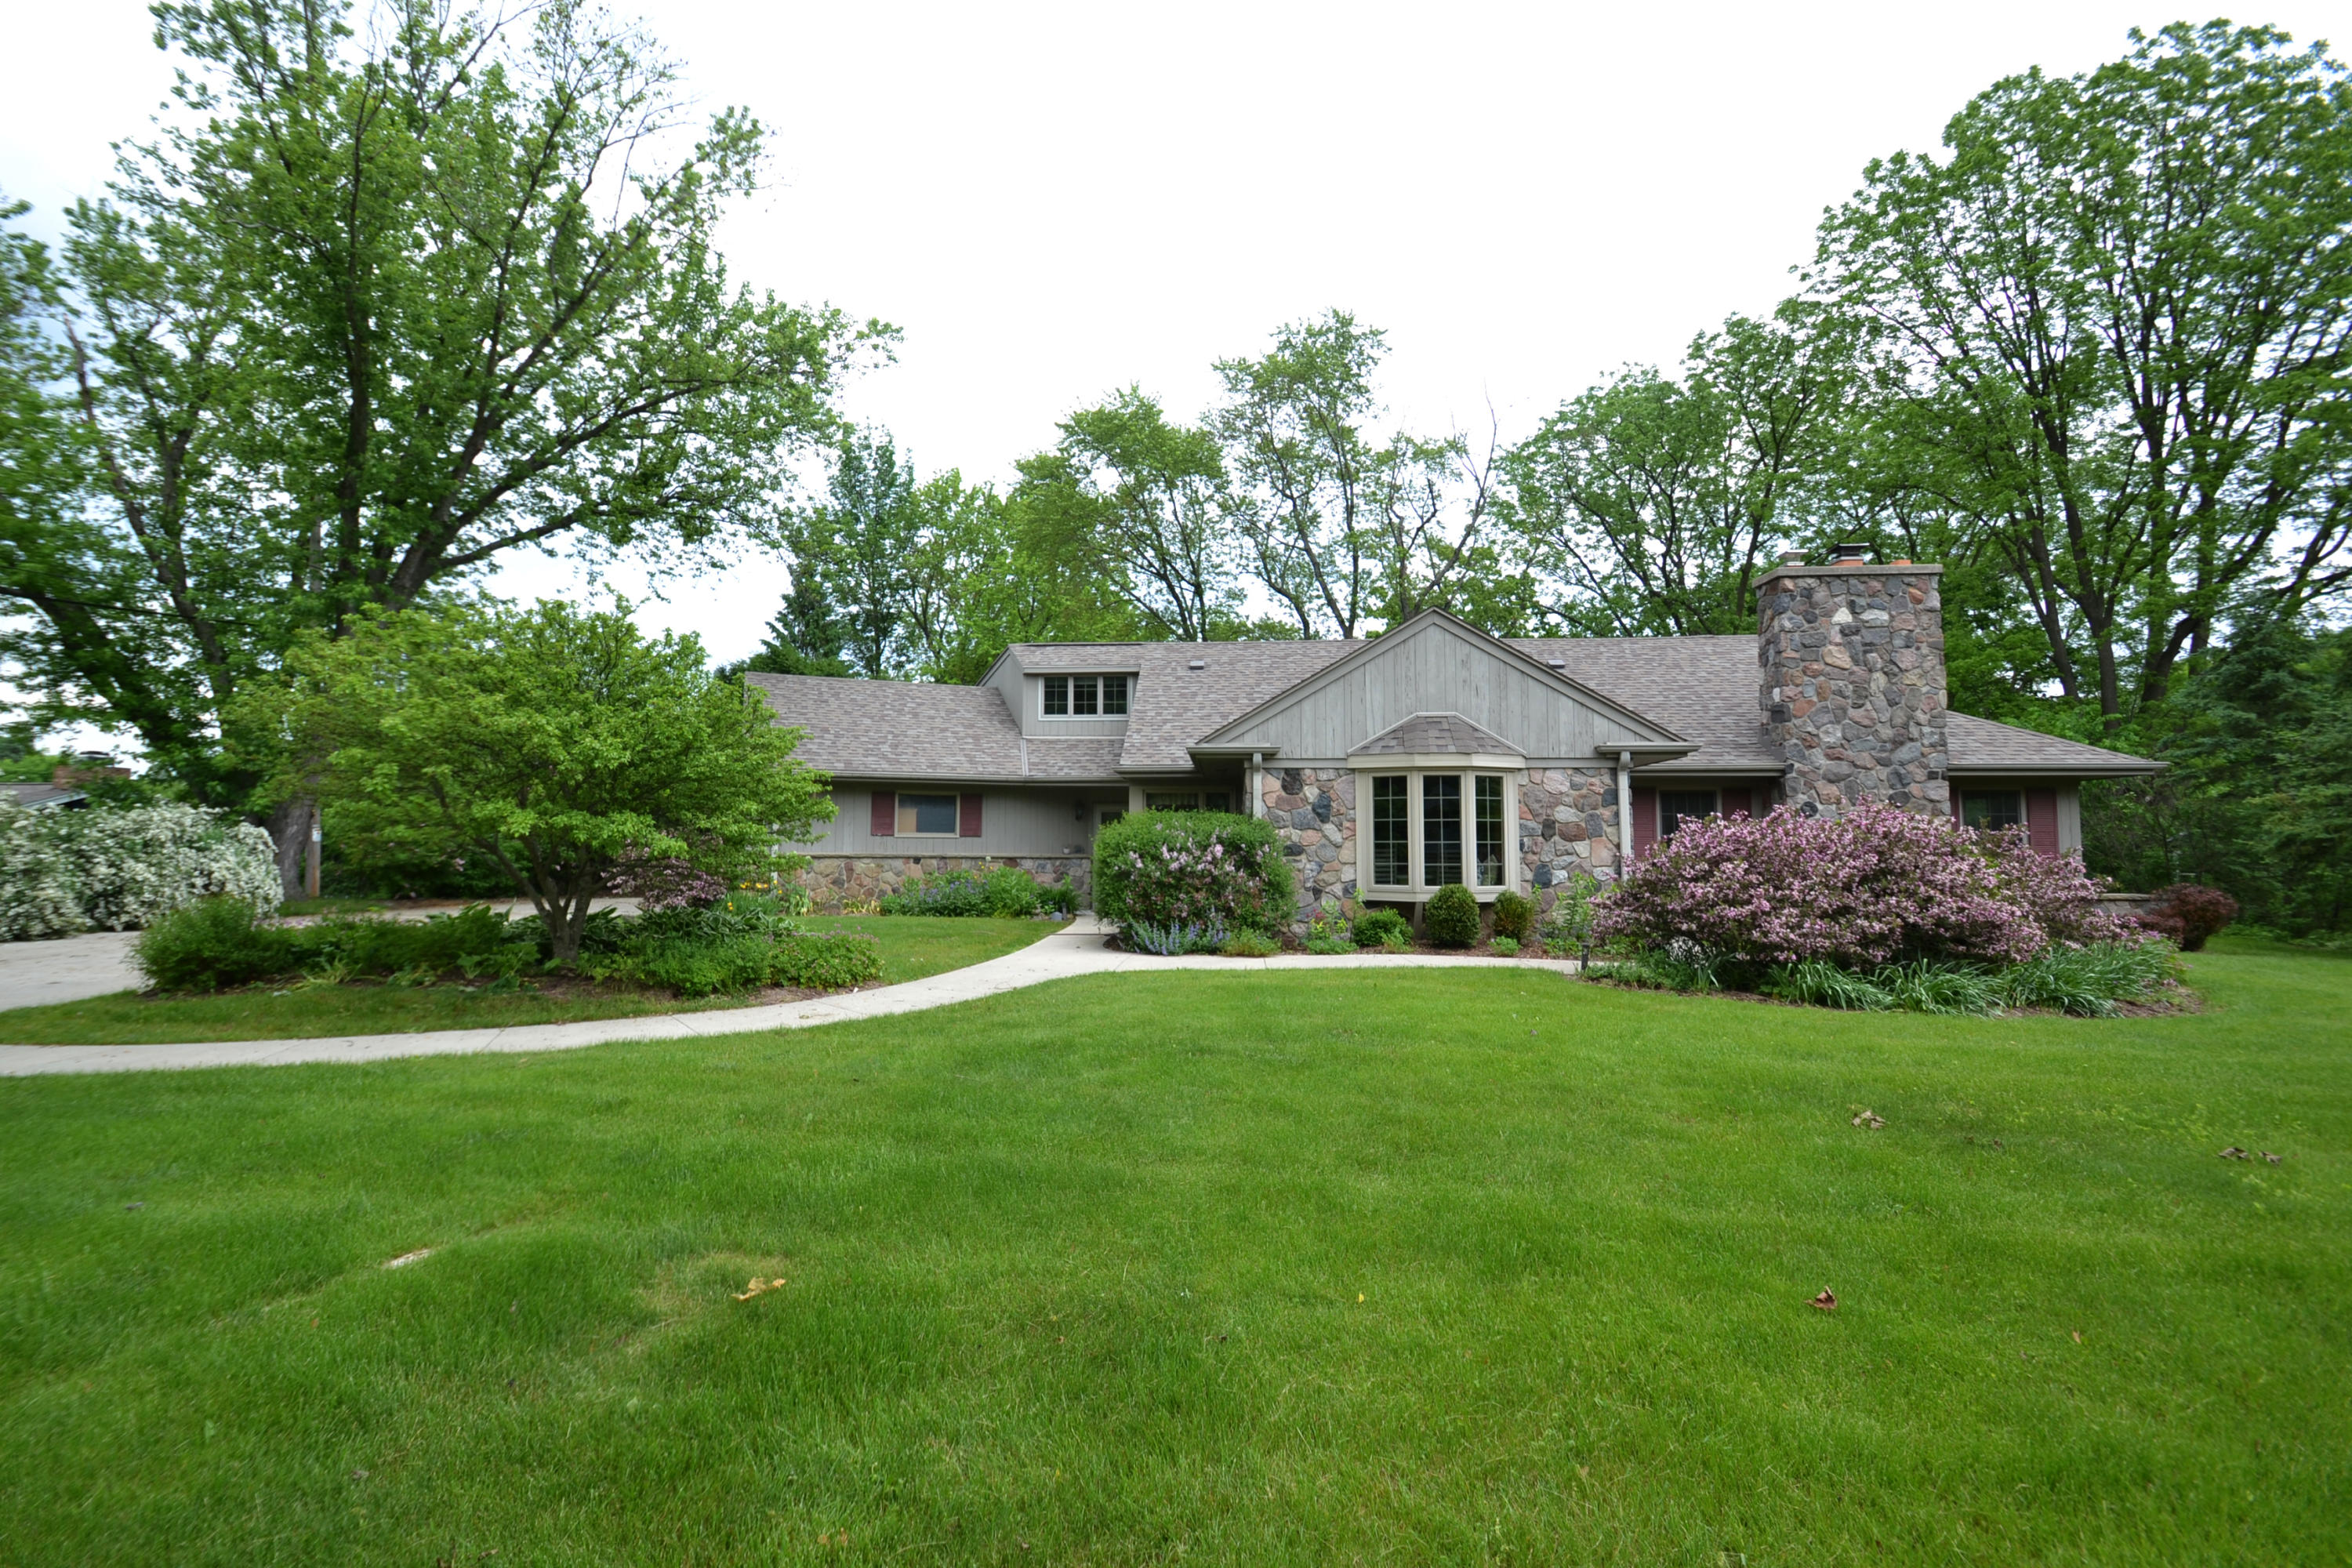 1420 Countryside Ln, Brookfield, Wisconsin 53045, 4 Bedrooms Bedrooms, 8 Rooms Rooms,2 BathroomsBathrooms,Single-Family,For Sale,Countryside Ln,1691265